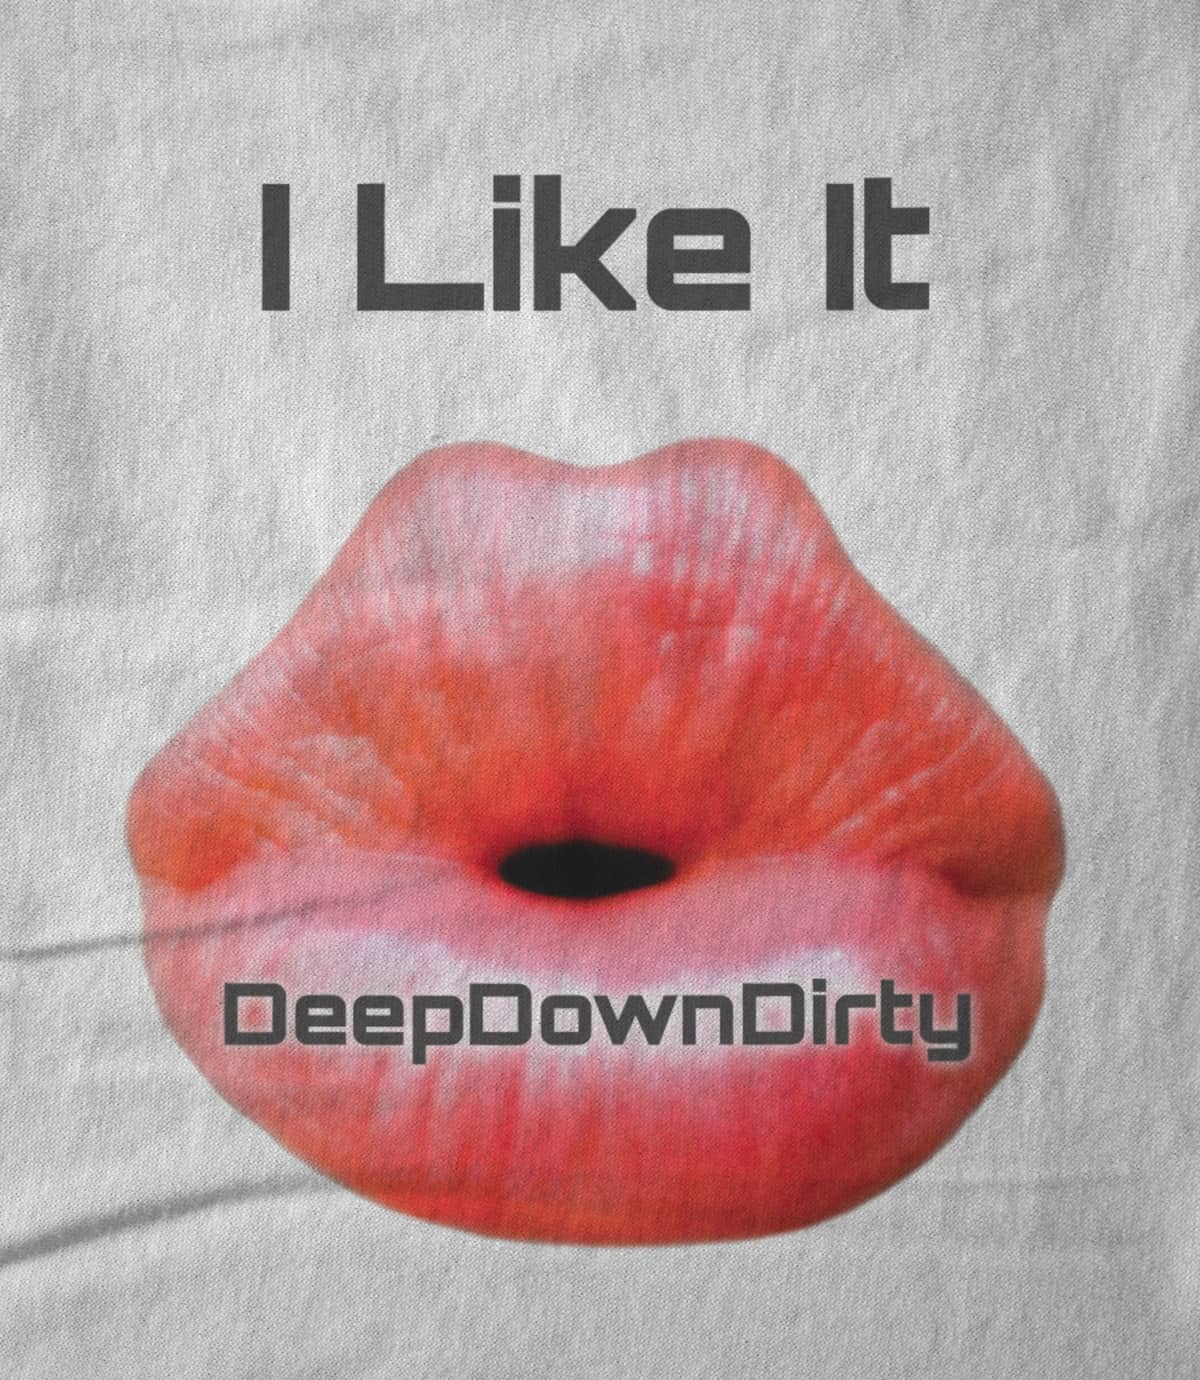 Deepdowndirty record label i like it signature 1495820928